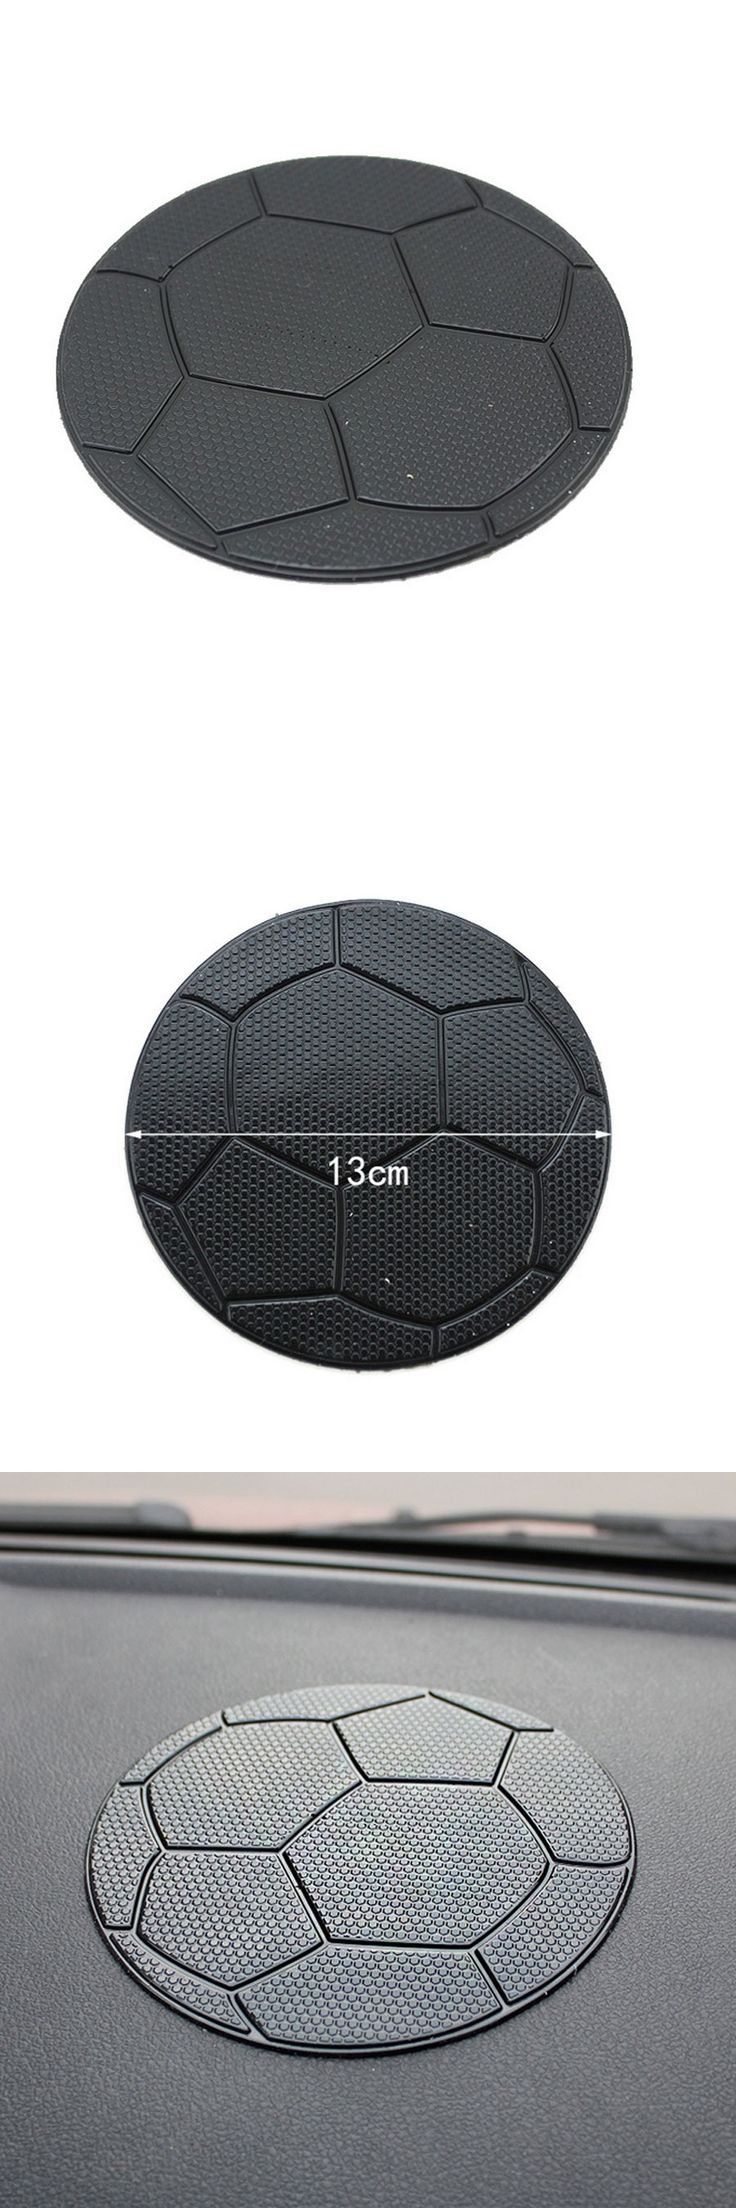 1PCS Interior Car Football Anti-Slip Dashboard Mat Sticky For Pad Non-slip Holder GPS Smart iPhone Key HoldersNew